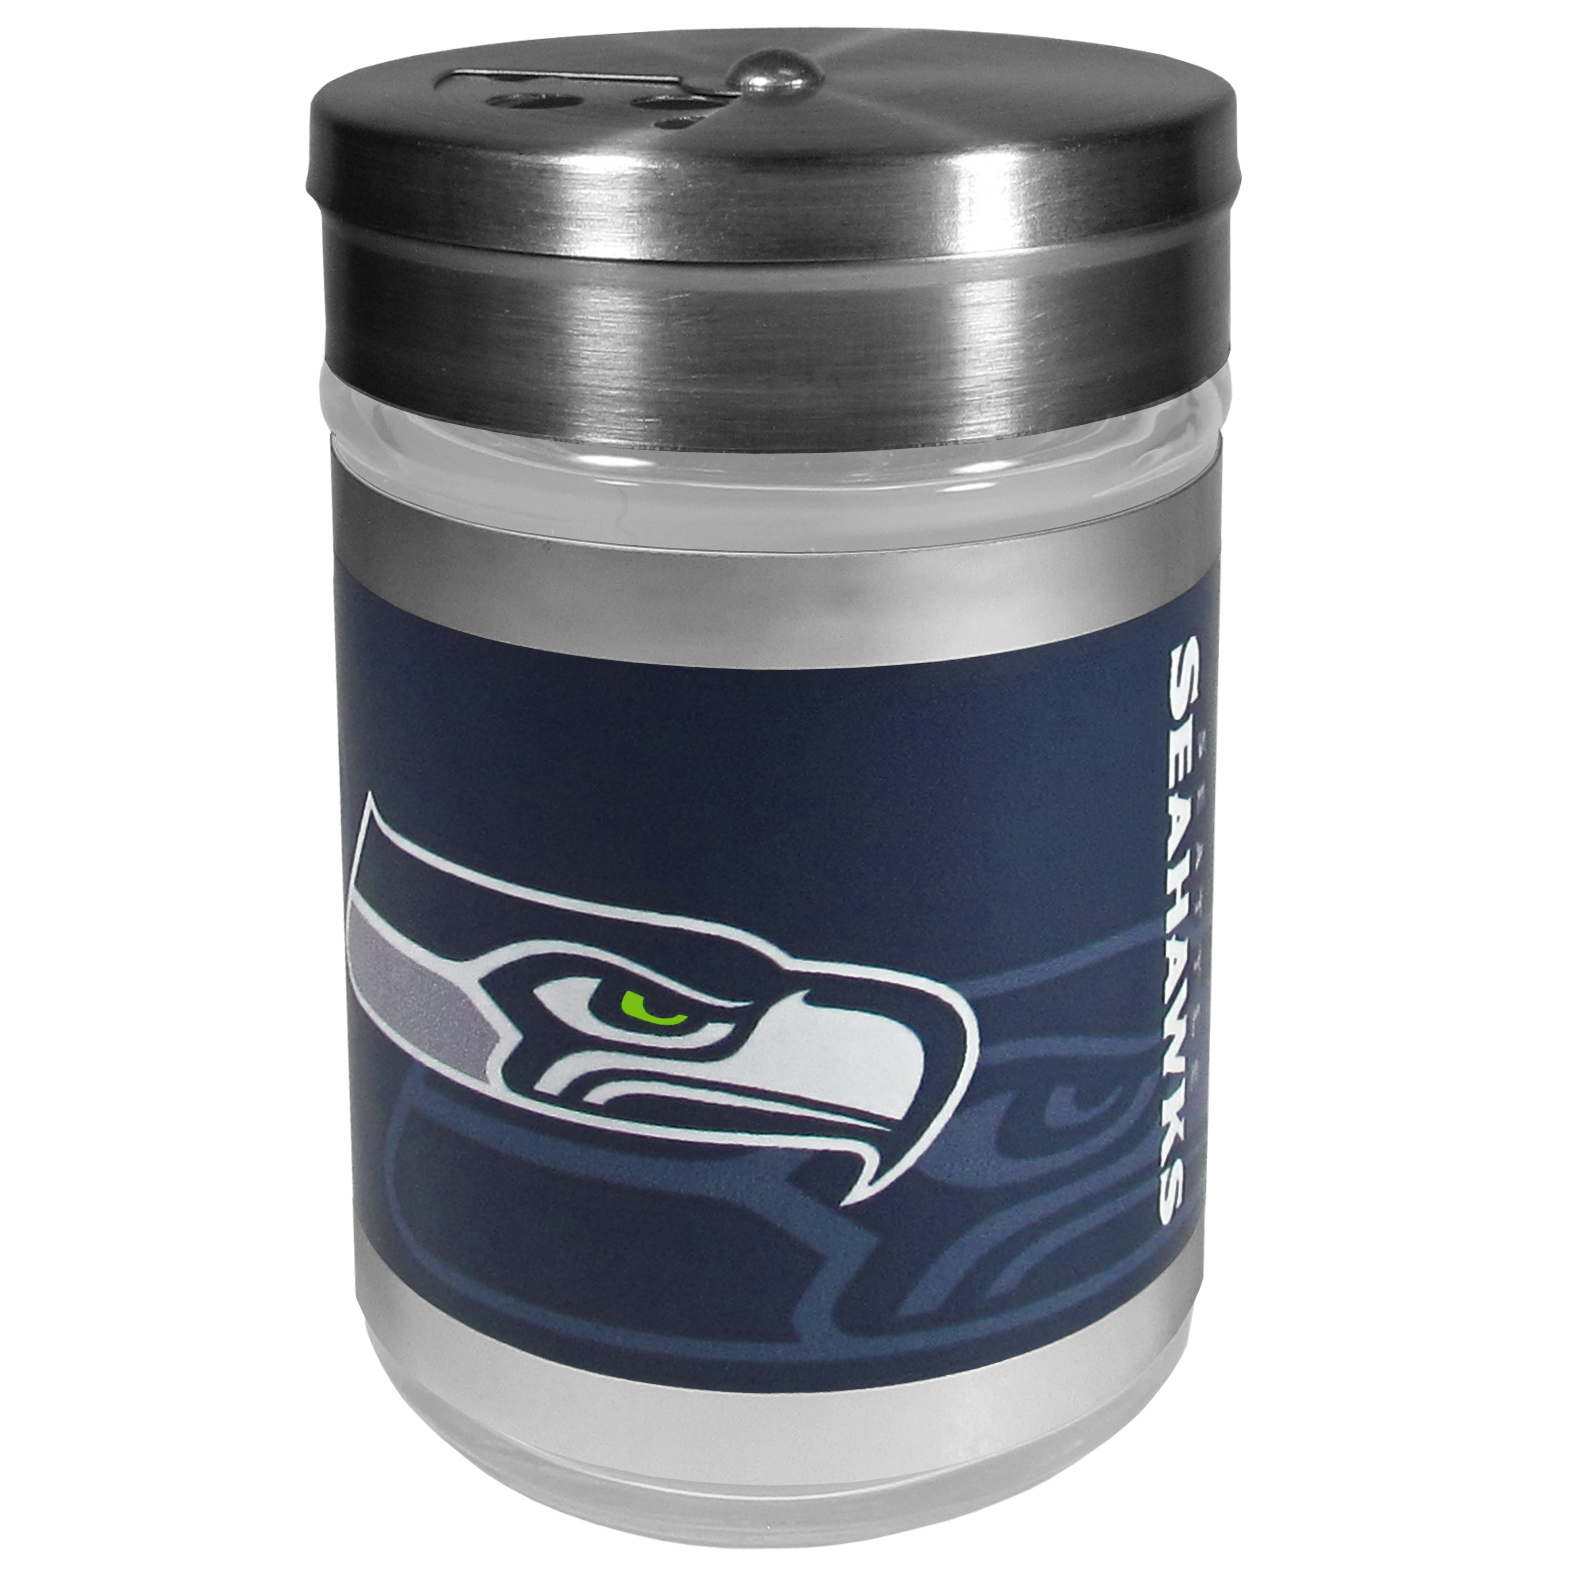 Seattle Seahawks Tailgater Season Shakers - Spice it up with our Seattle Seahawks tailgater season shakers! This compact shaker is 2 inch tall with a twist top that closes off the holes at the top making it perfect for travel preventing those messy spills. The shaker has wide holes perfect for keeping your pepper seeds or cheese toppings. The bright team graphics will make you the envy of the other fans while you are grilling up your tailgating goodies.